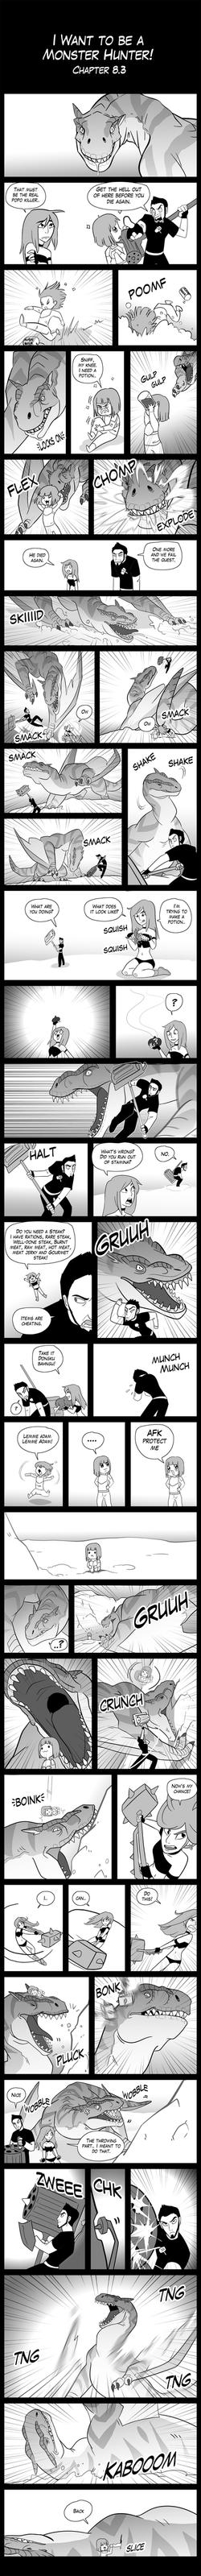 I Want to be a Monster Hunter! 8-3 by macawnivore